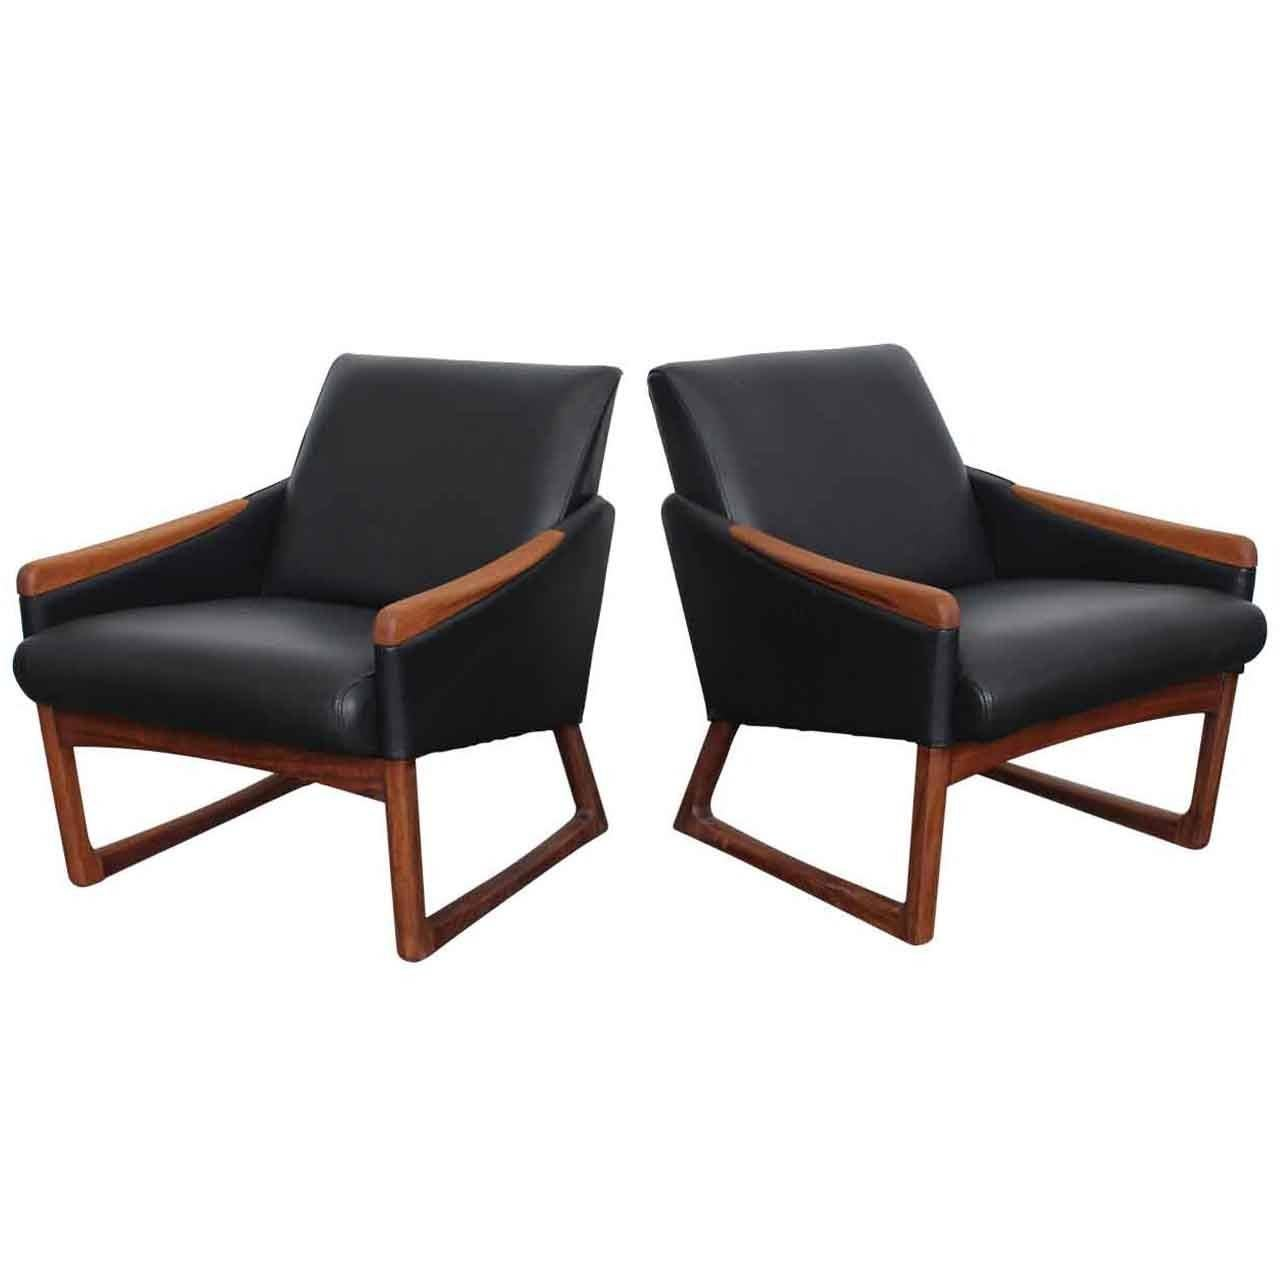 mid century modern leather lounge chairs at 1stdibs ForMid Century Modern Leather Chairs